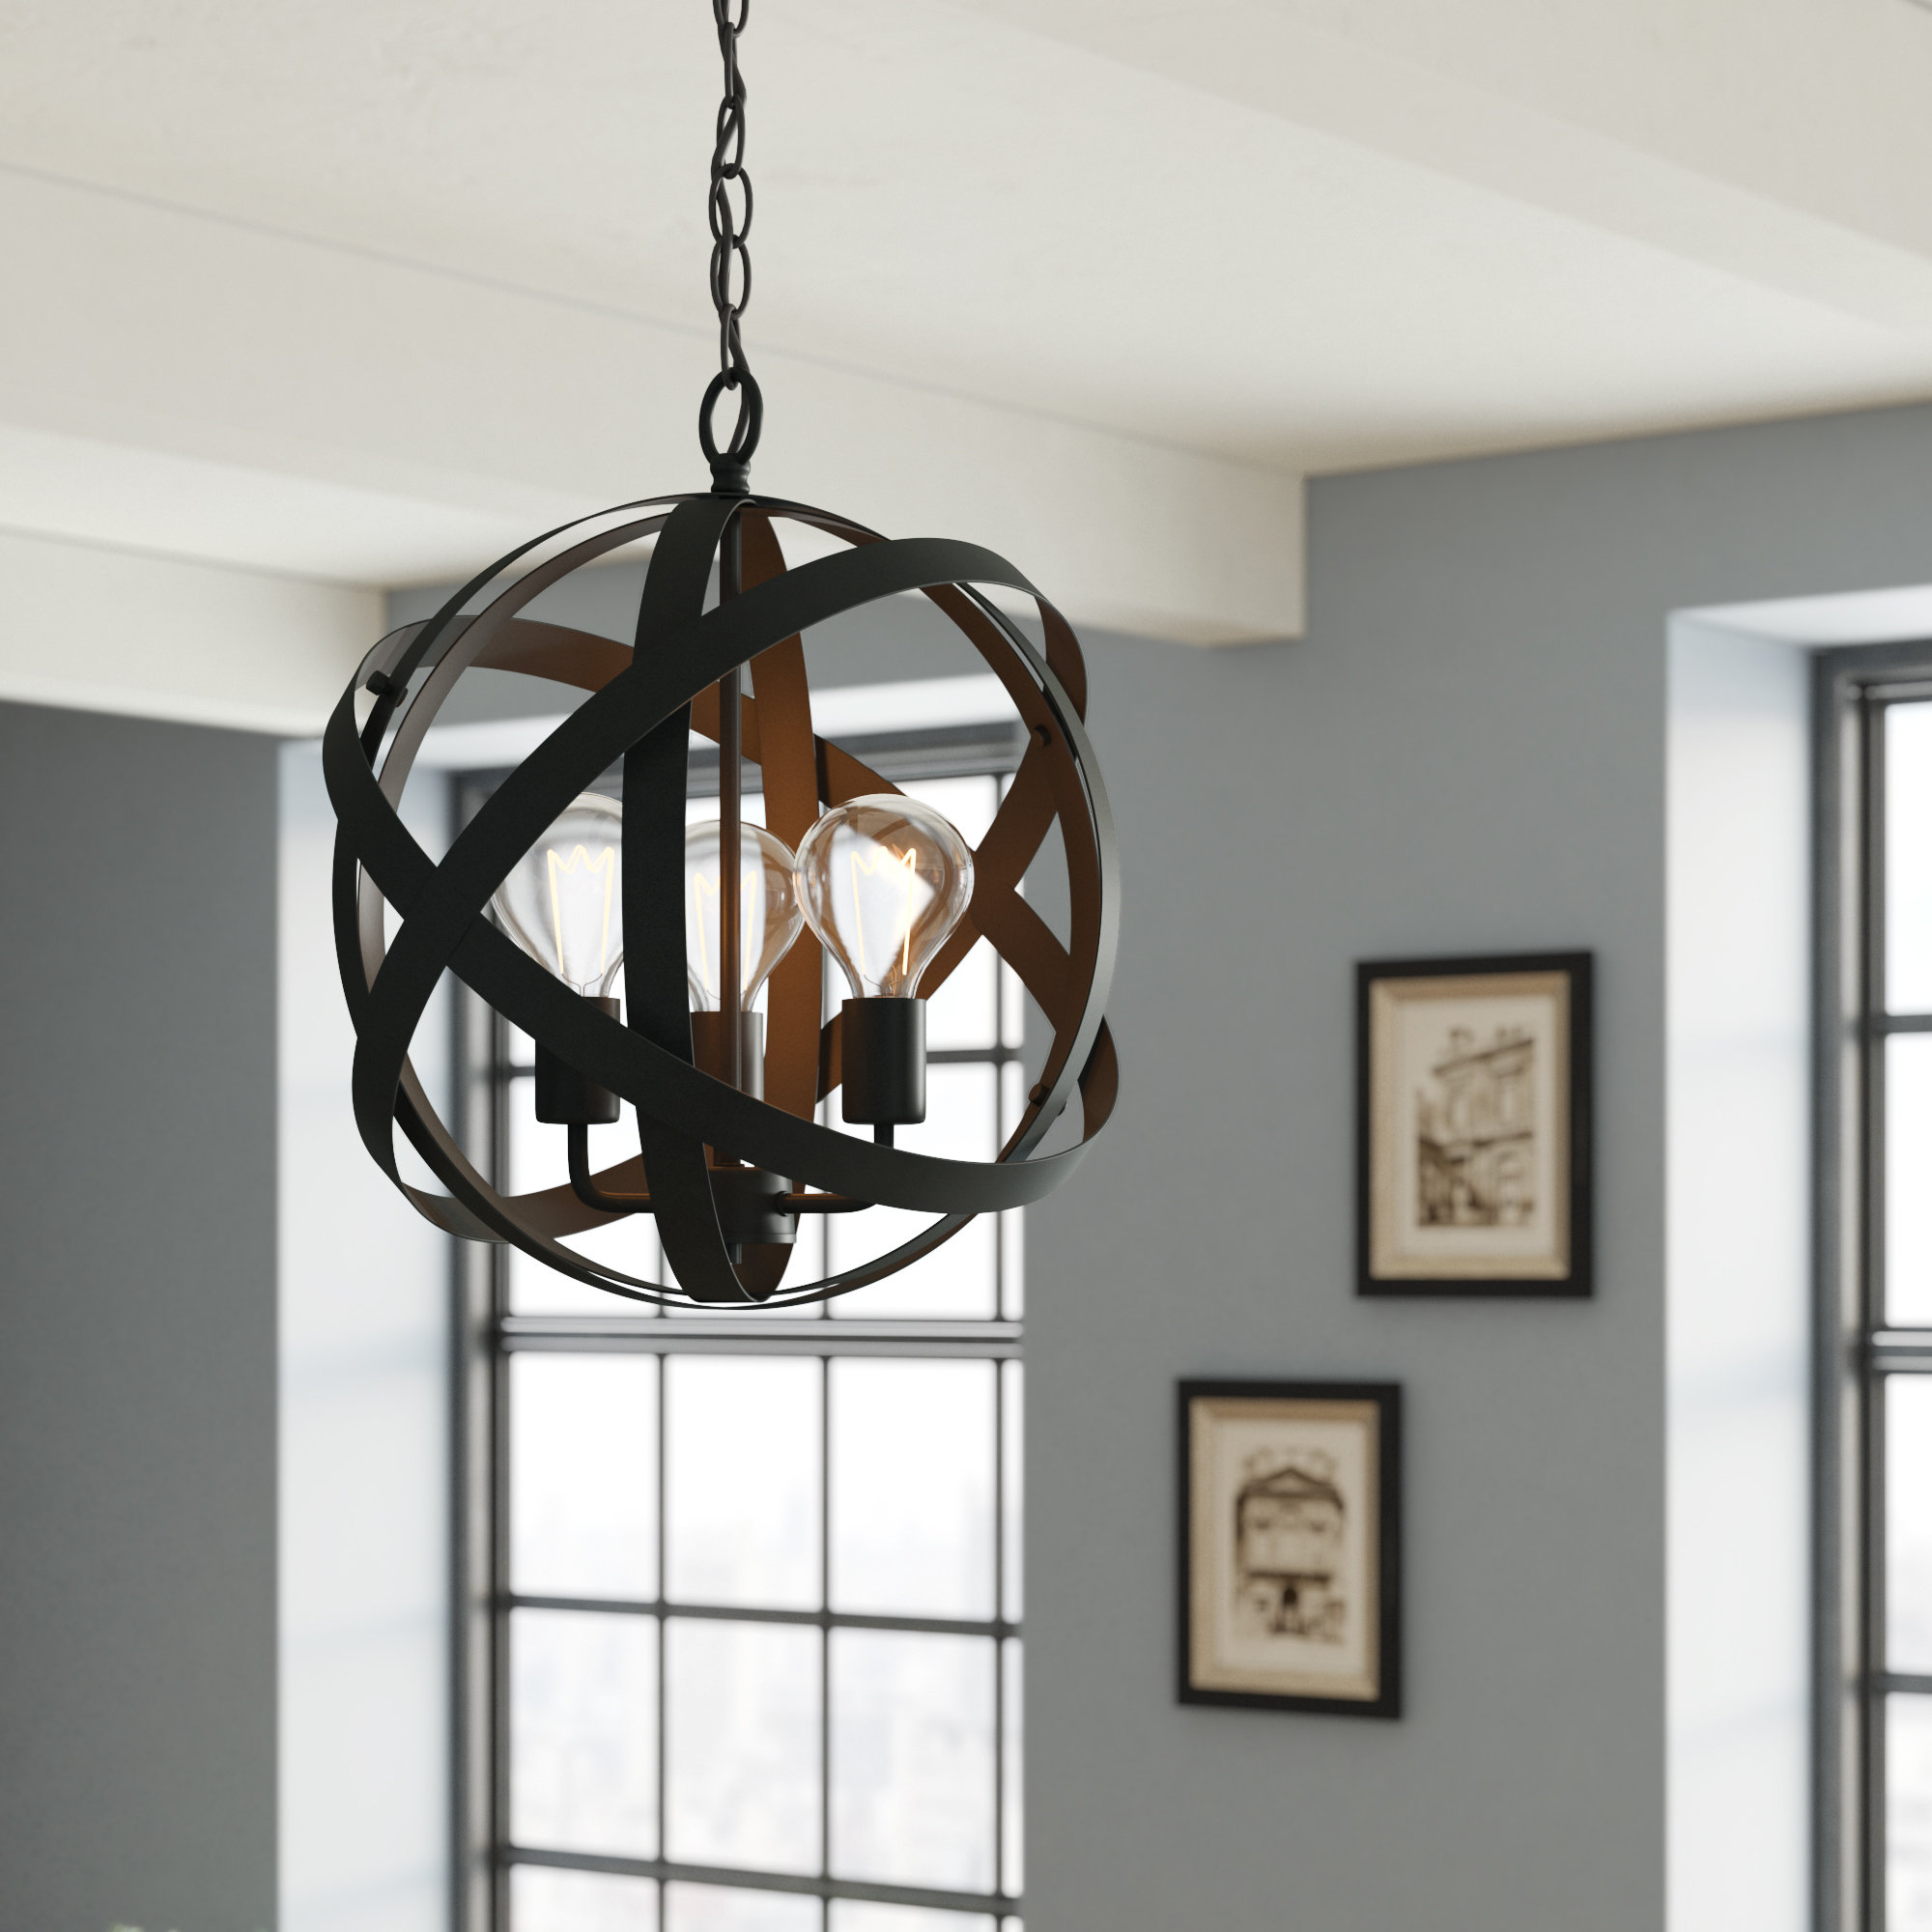 2019 Shipststour 3 Light Globe Chandeliers Within Framlingham 3 Light Globe Chandelier (View 3 of 20)